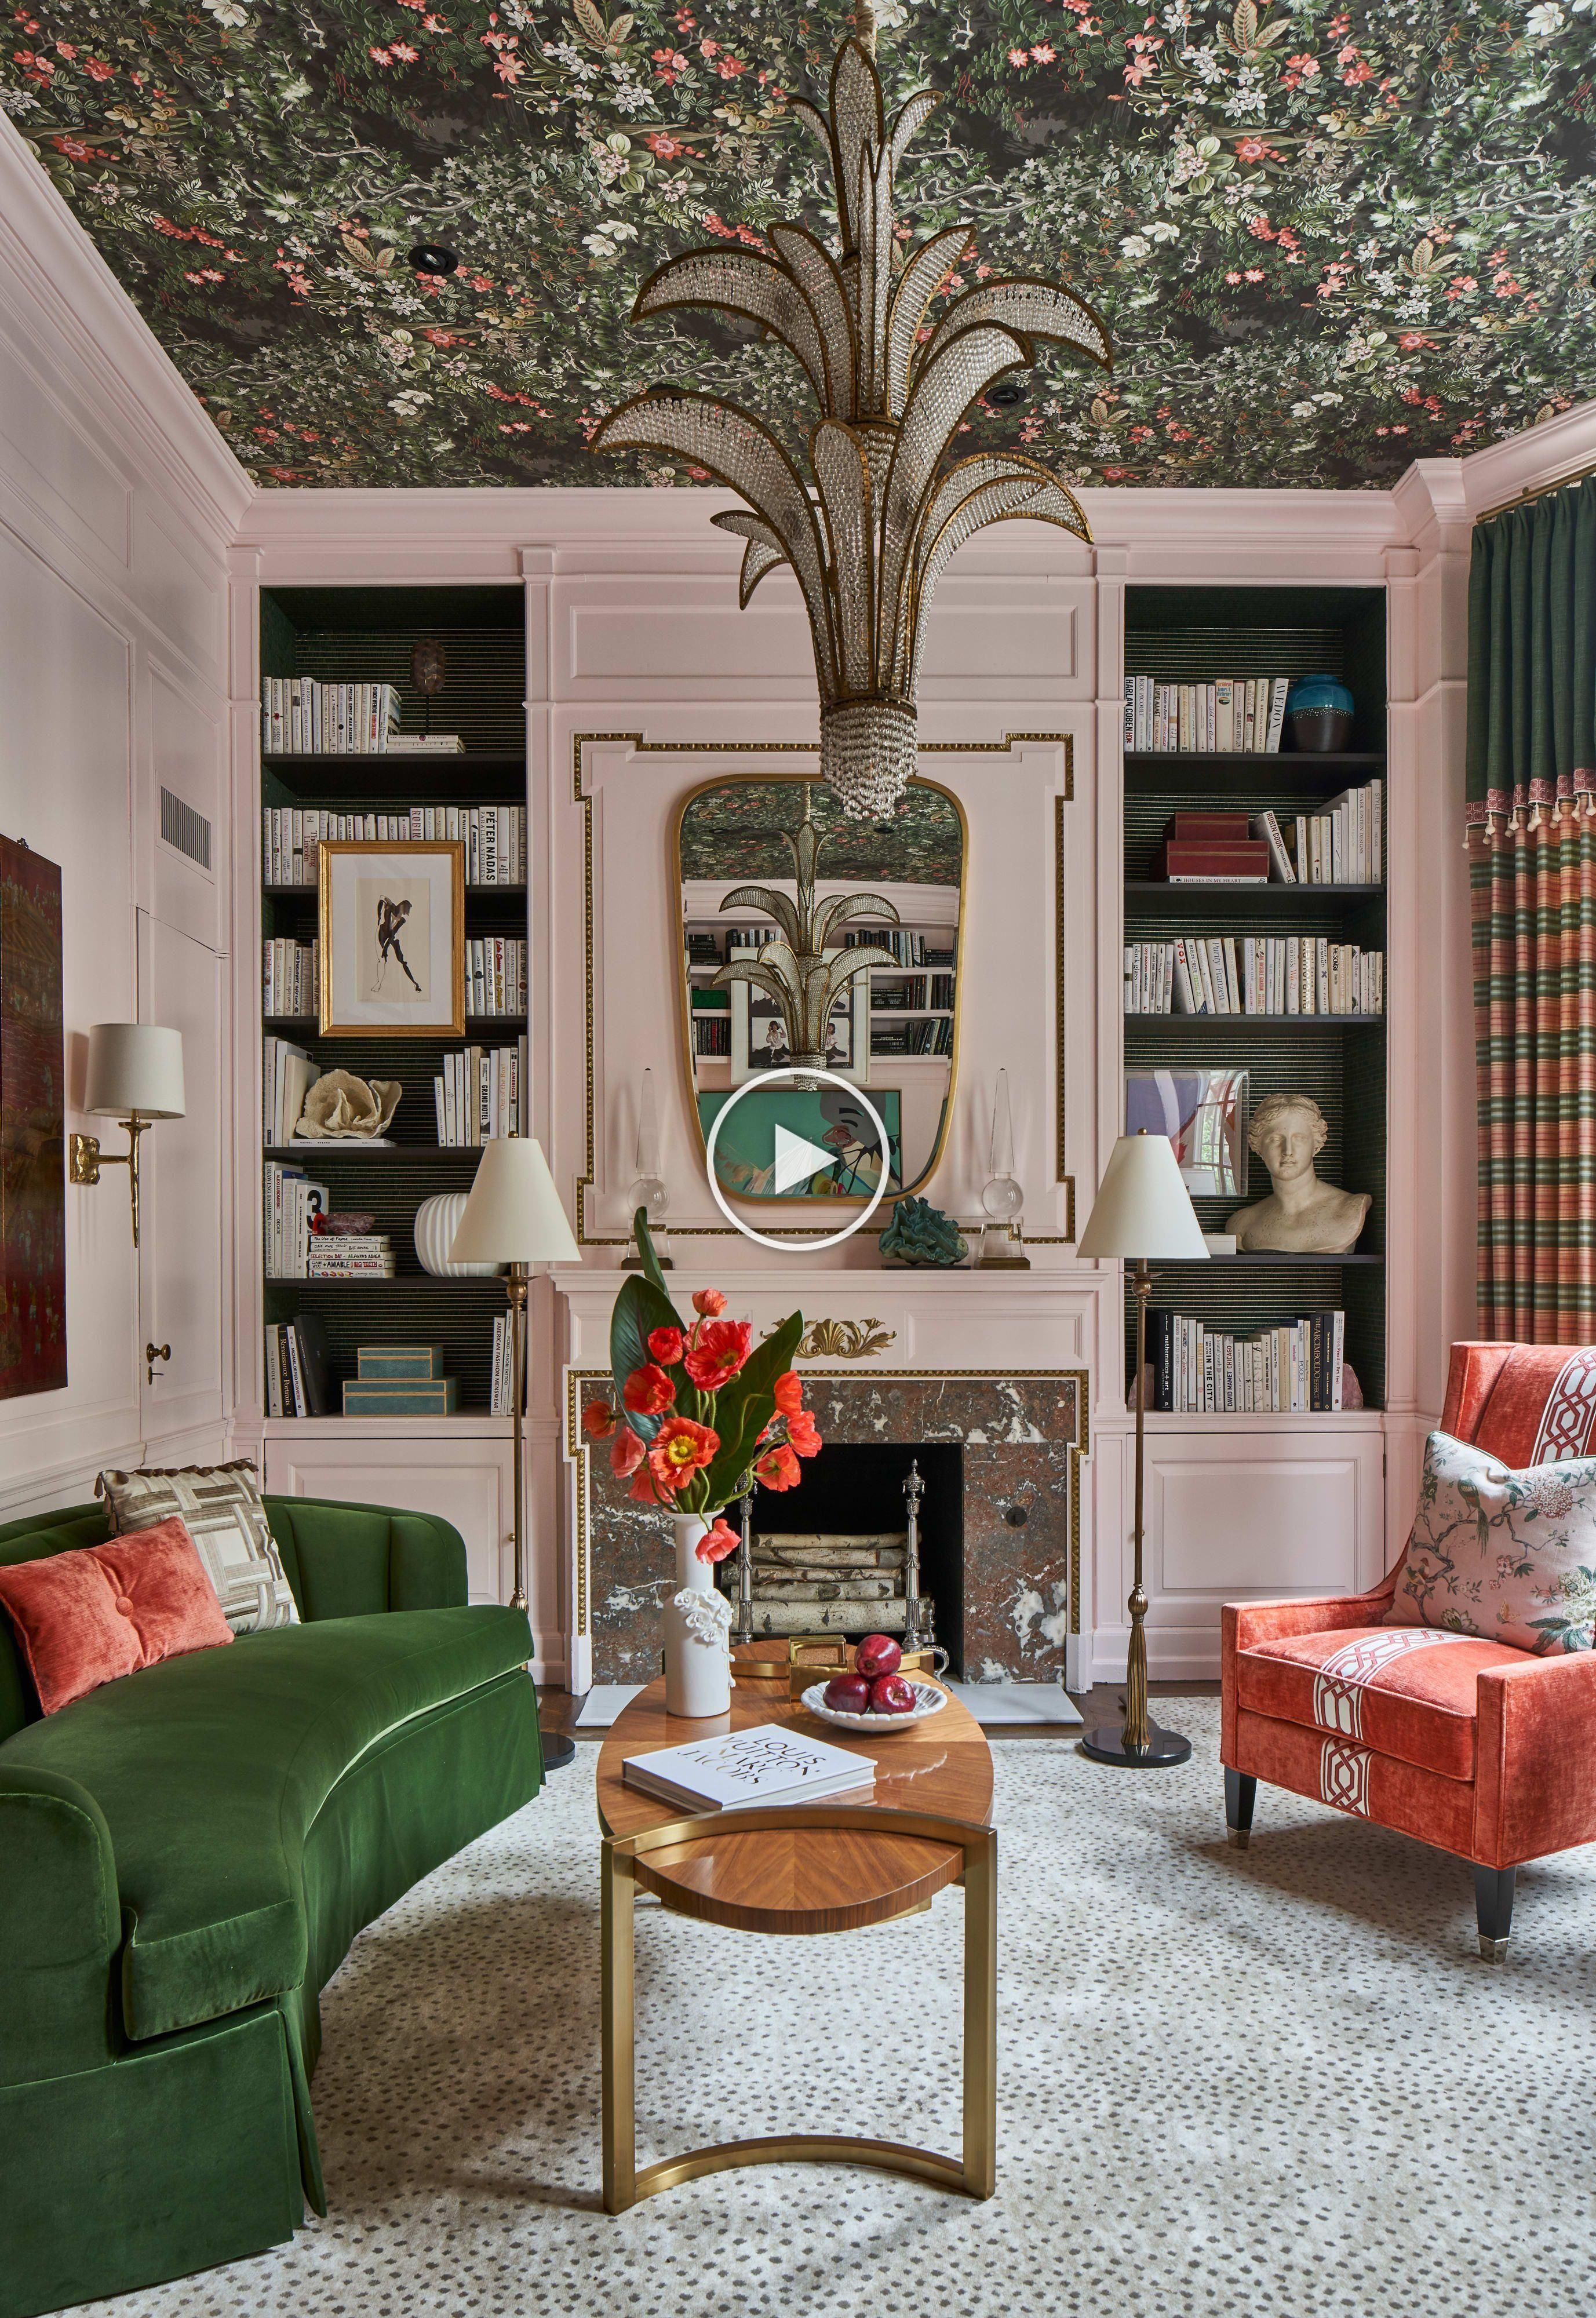 40 Romantic Glam Ideas Inspiration In 2021 Interior Design House Interior Home Decor